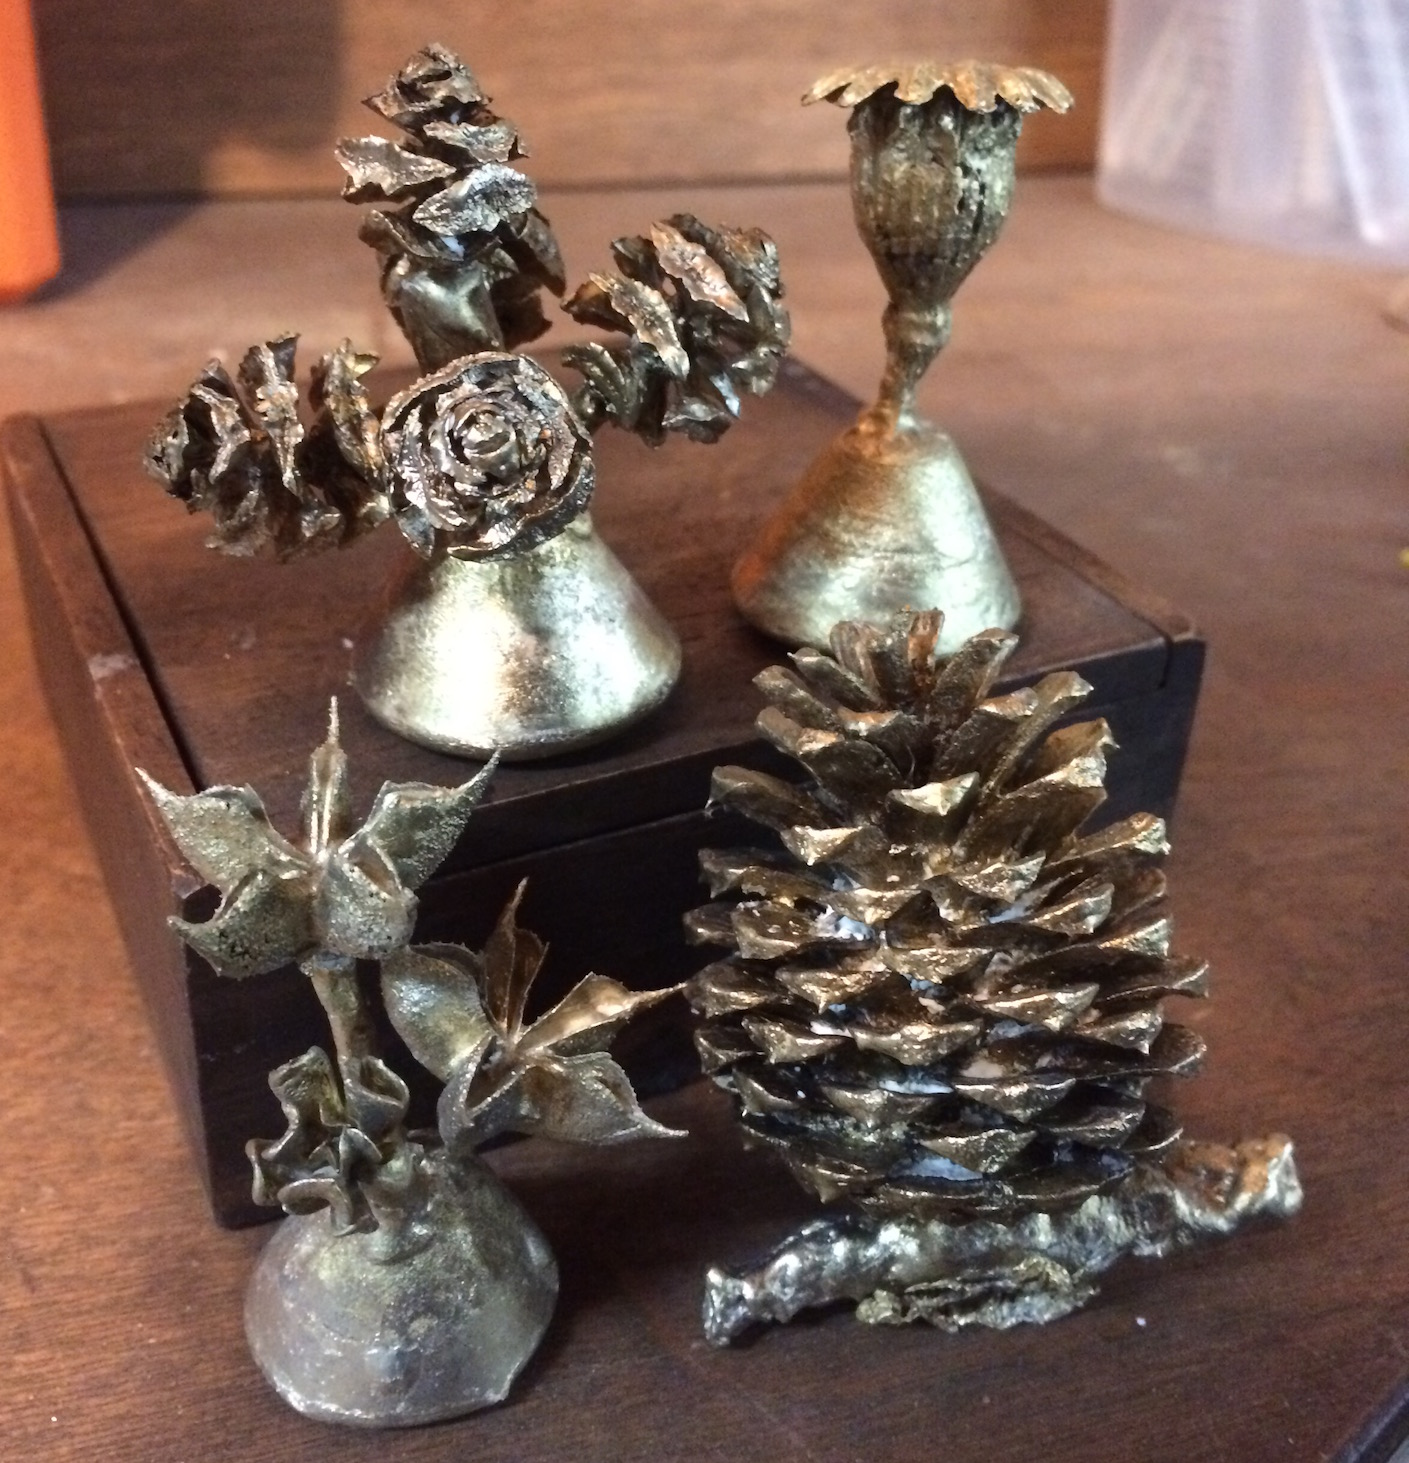 Cast organic pieces